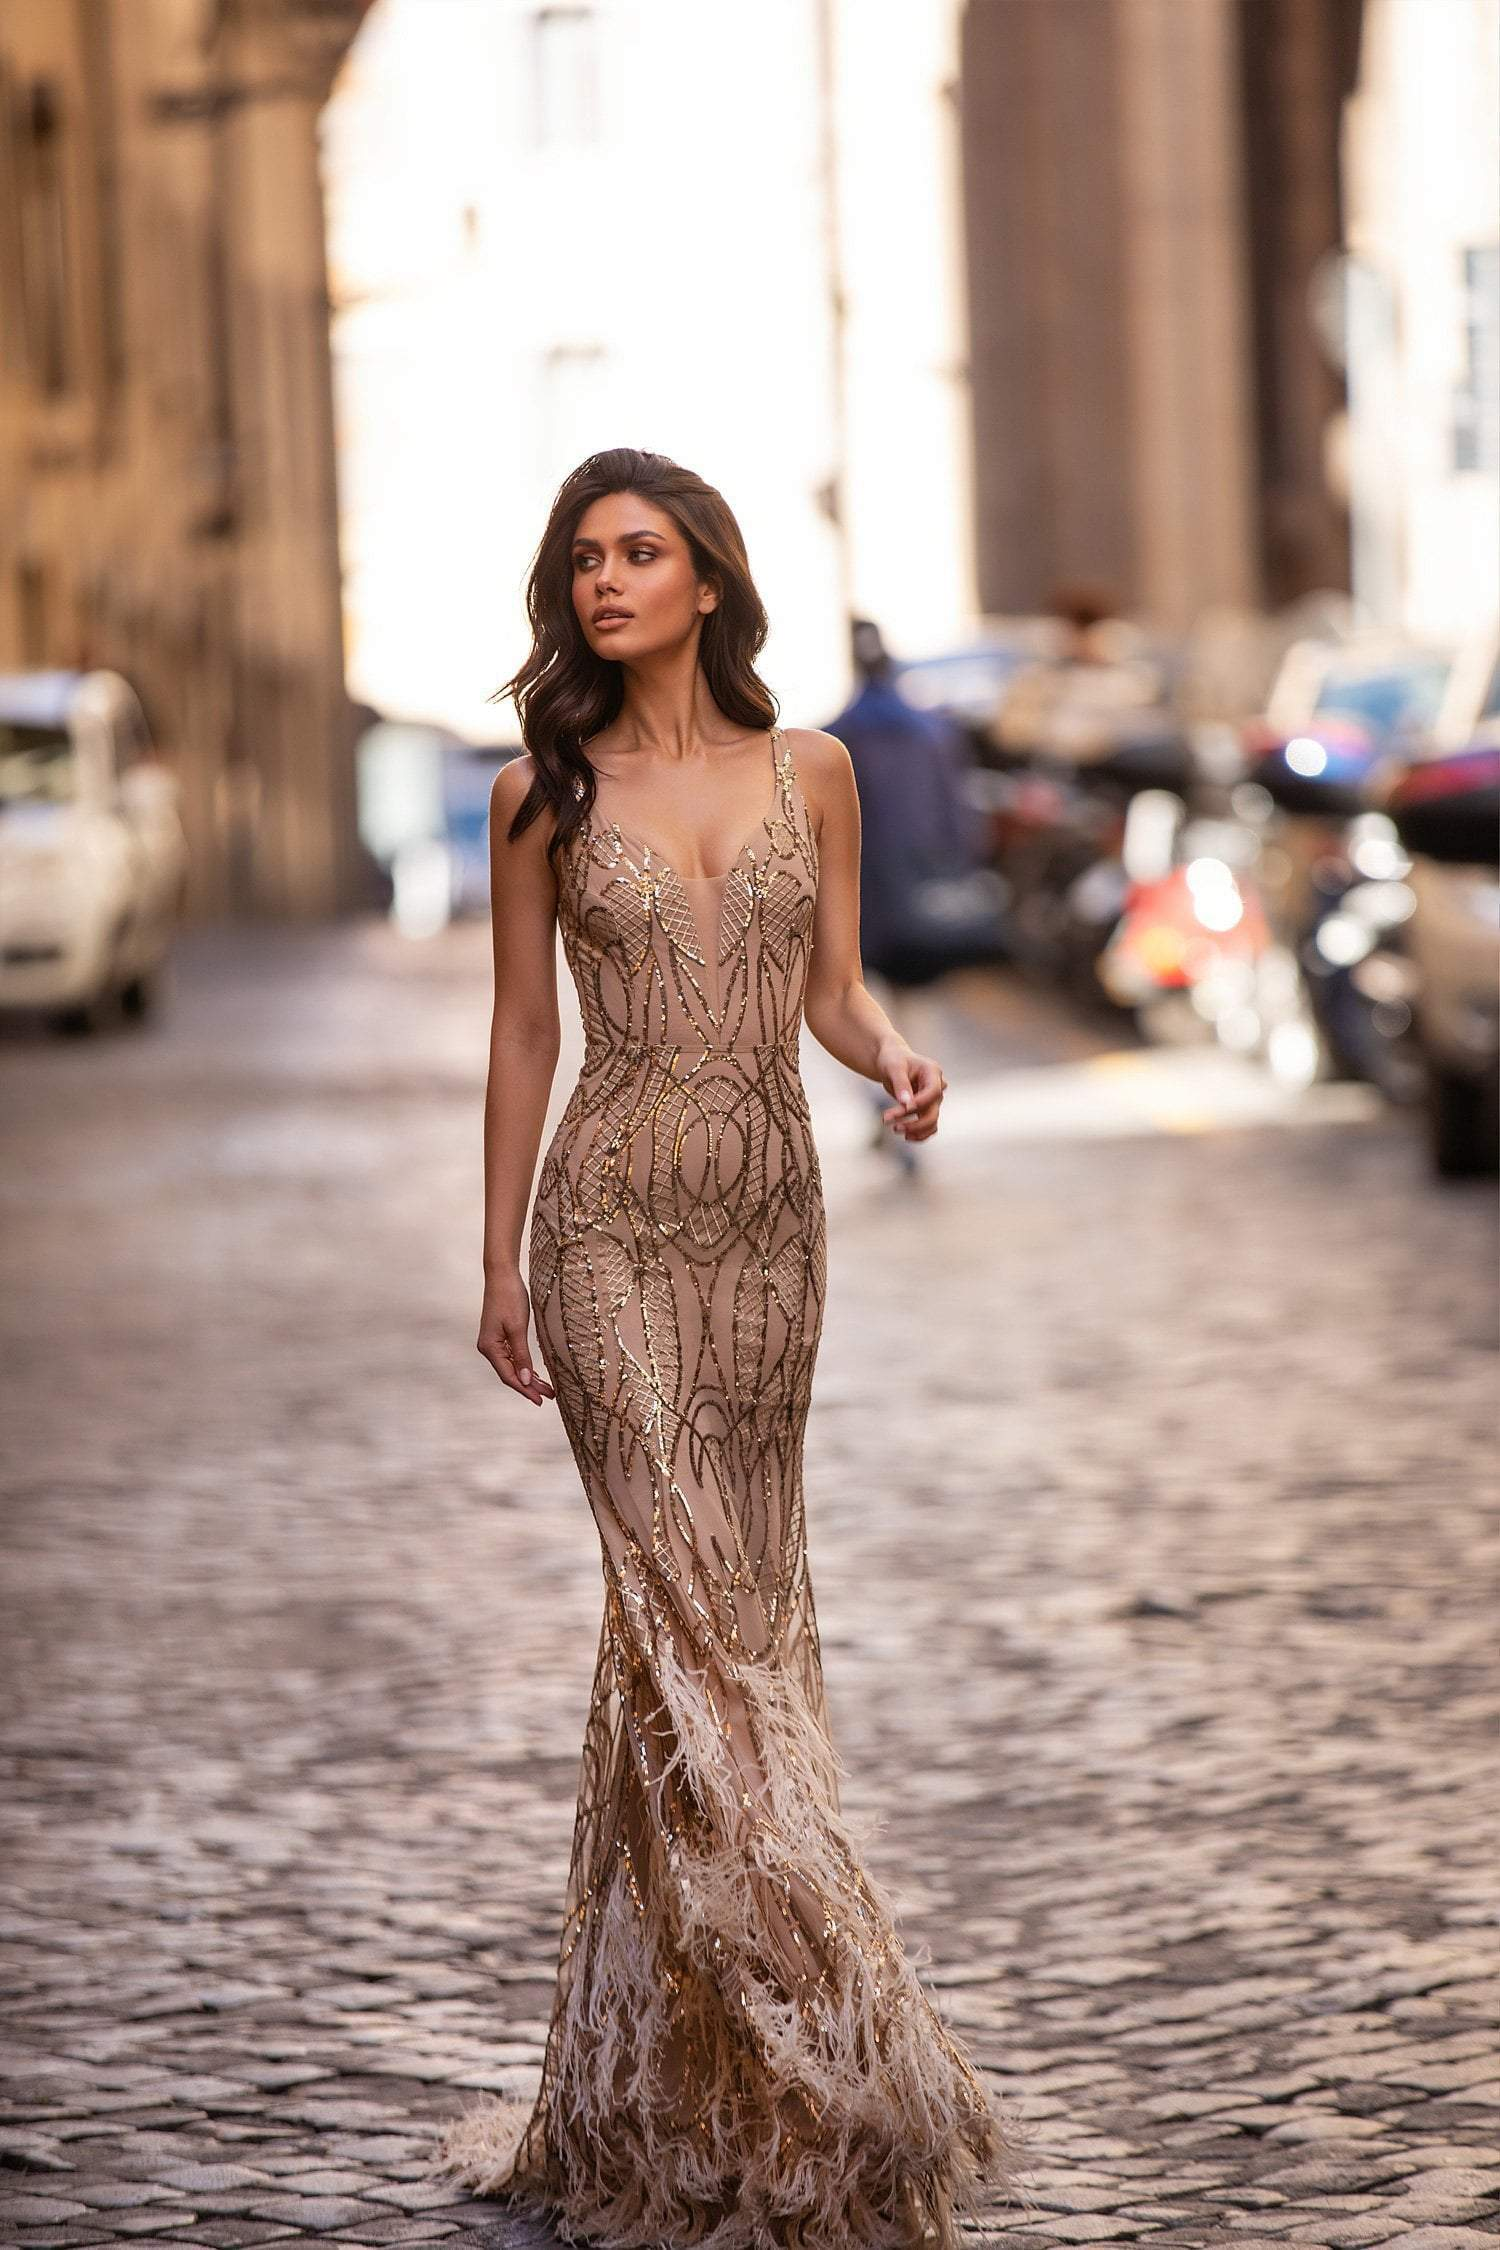 Natalya - Rose Gold Sequin Gown with V-Neckline & Feathered Train